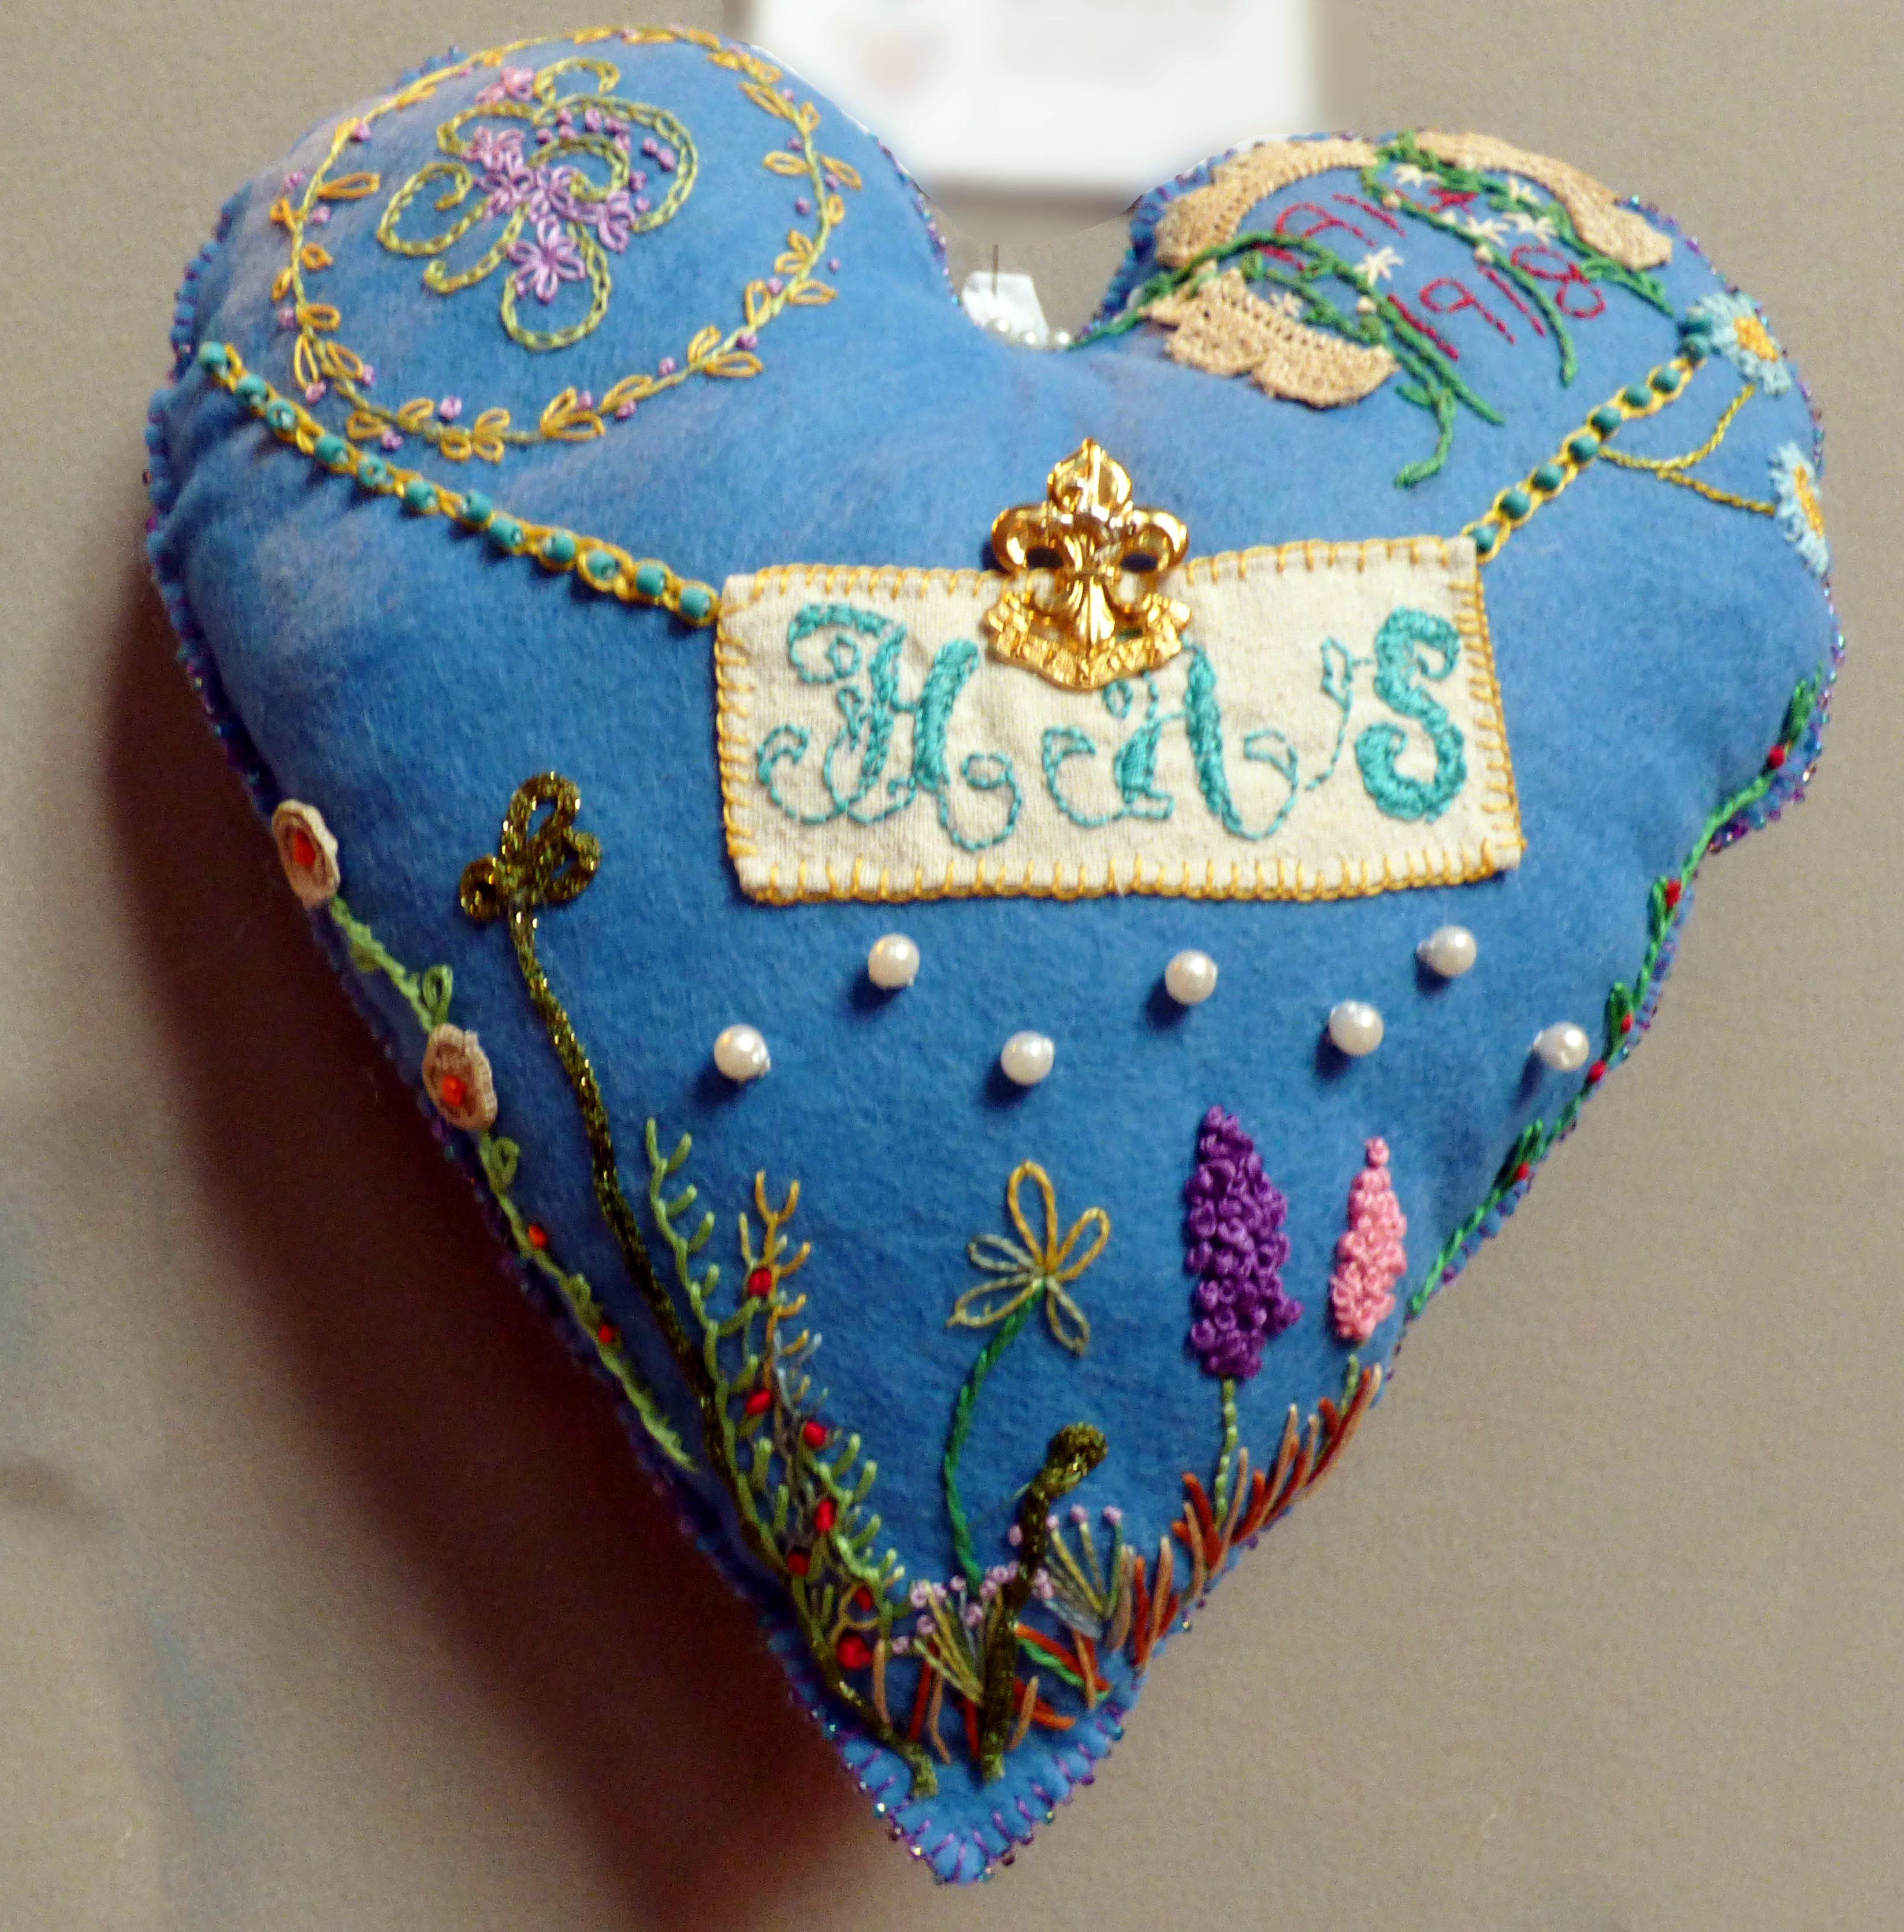 WW1 Heart for 'POP' by Nerys Stocker, in memory of Henry Arthur Stocker, 100 Hearts exhibition, Liverpool Cathedral, Sept 2018